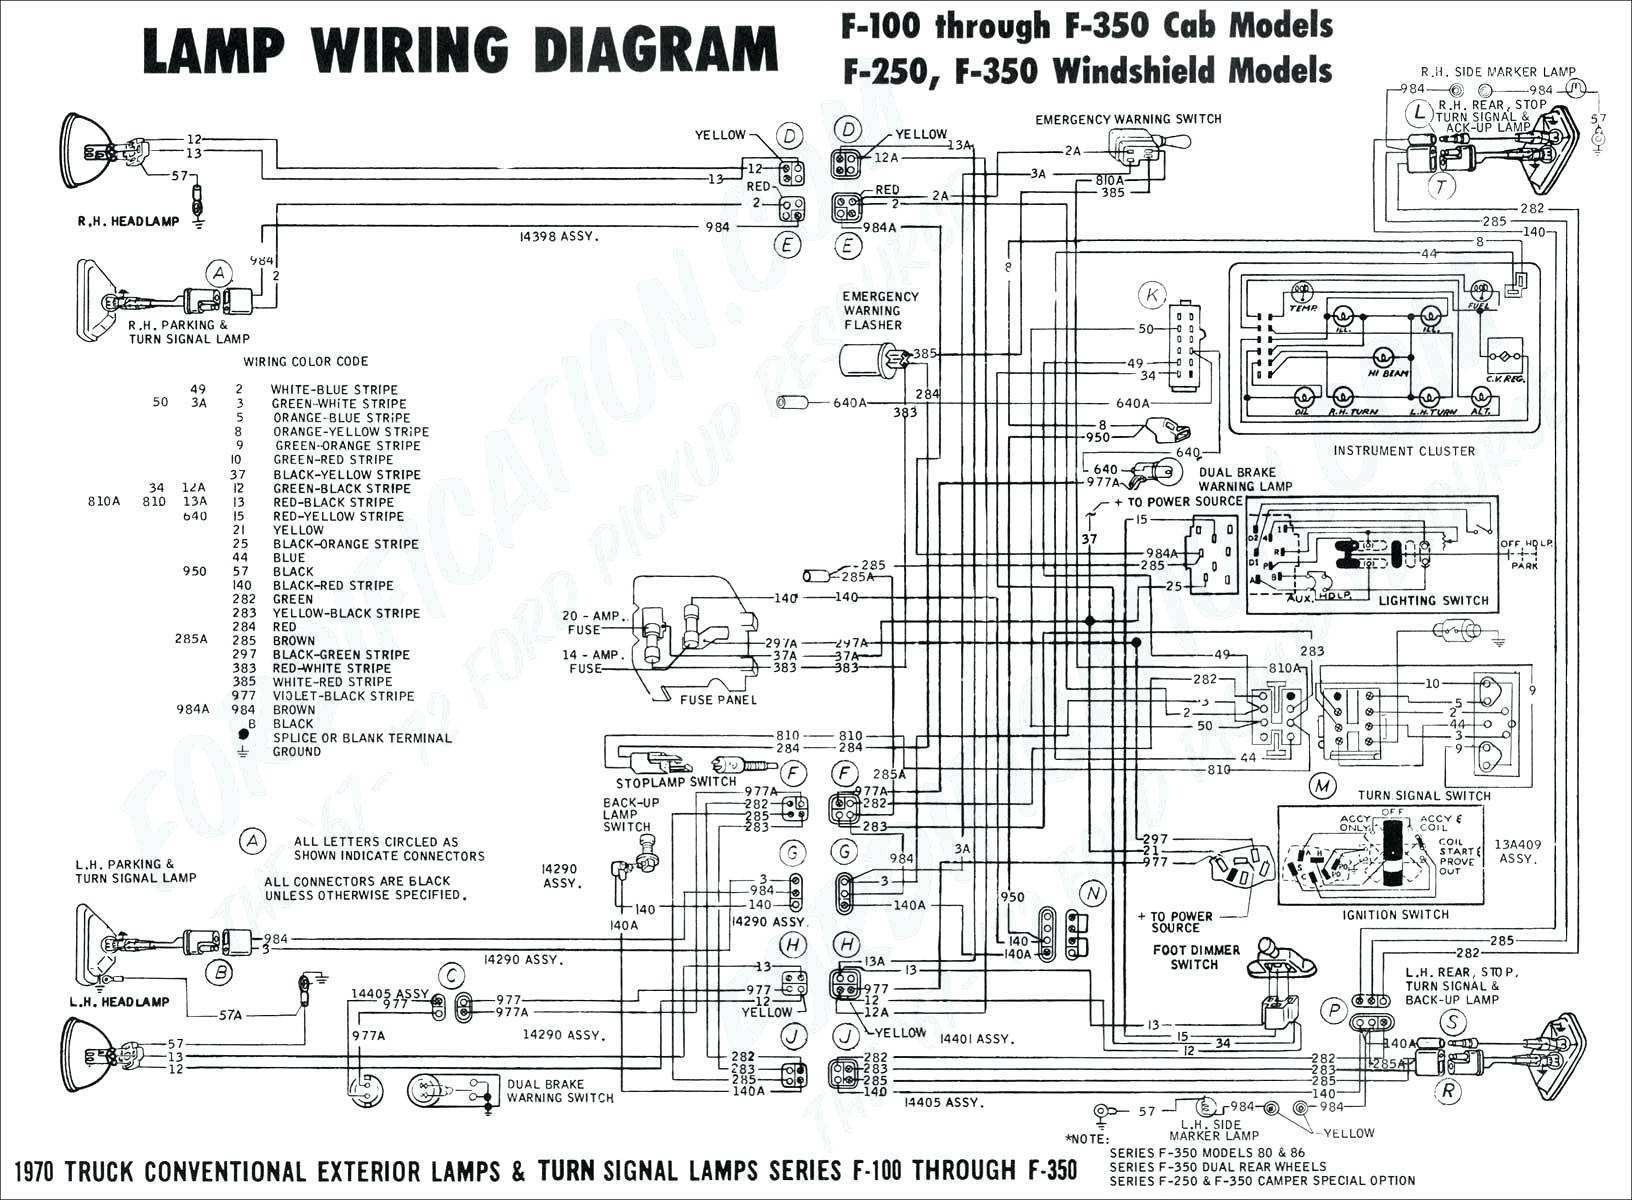 1974 Sportster Directional Light Wiring Diagram Rn 6122] Turn Signal Wiring Diagram Also Harley Ignition Of 1974 Sportster Directional Light Wiring Diagram